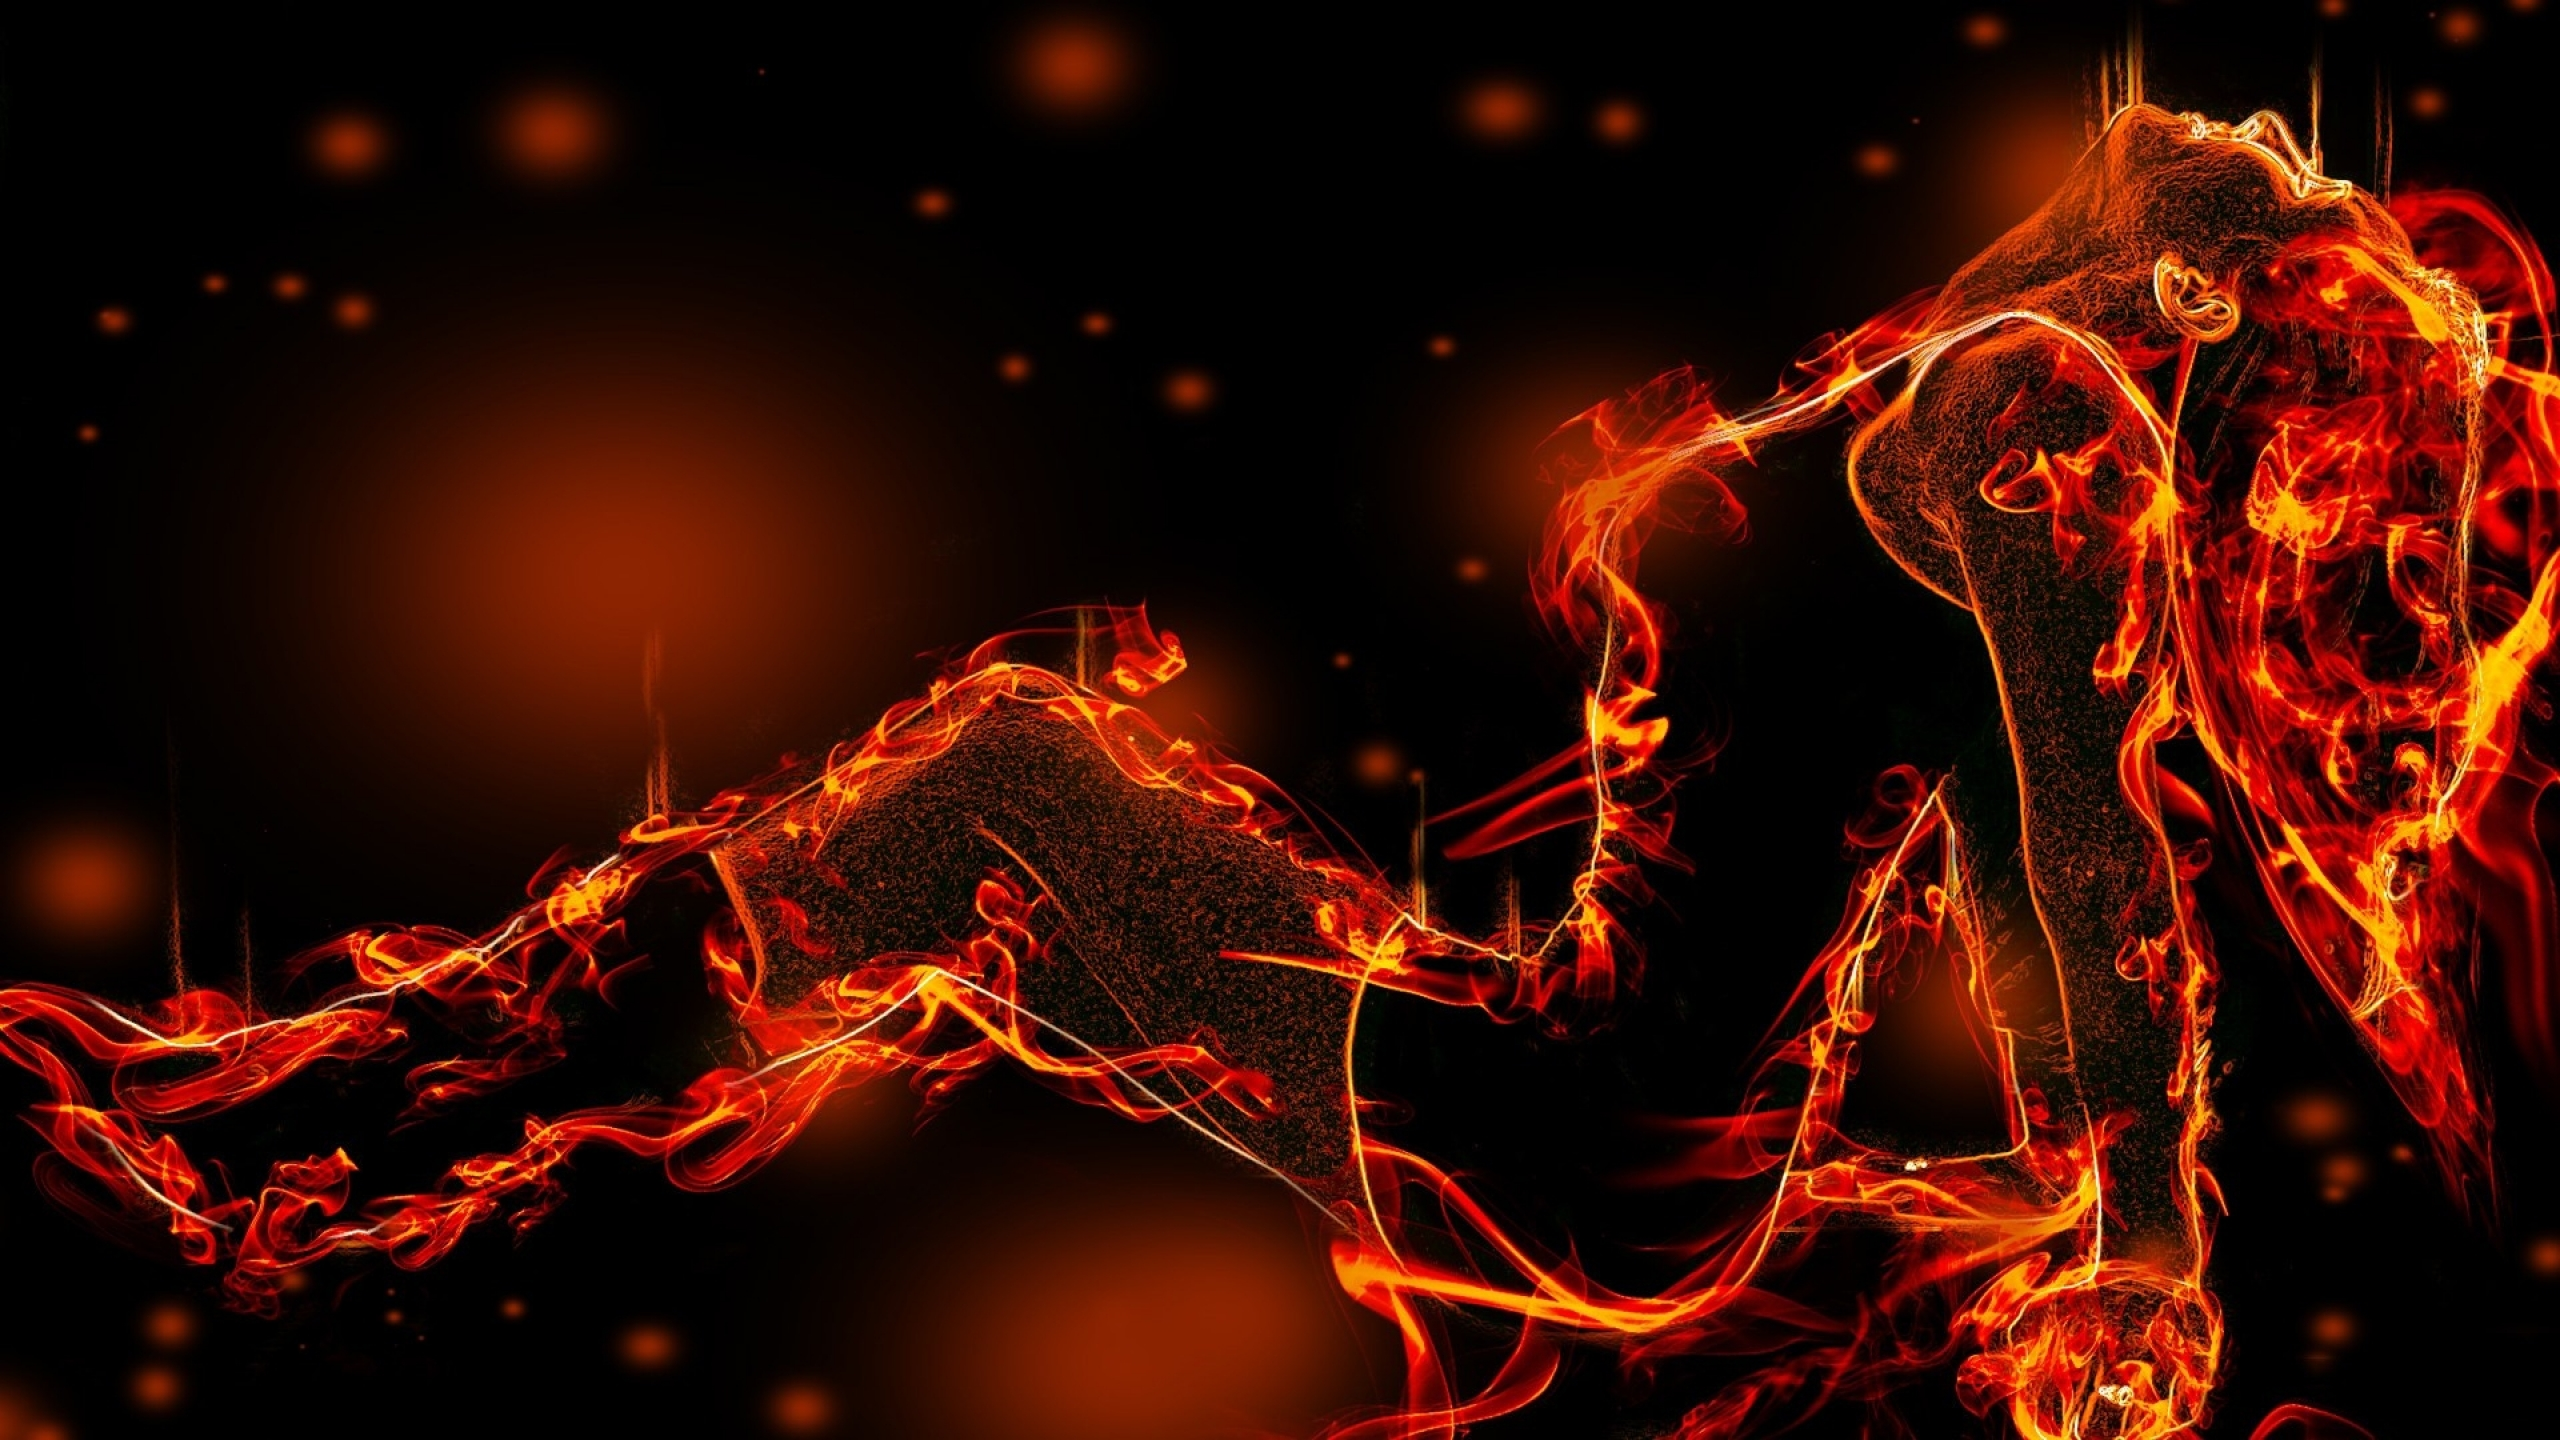 red fire rings fantasy art on fire black clothes 1920x1080 wallpaper 2560x1440